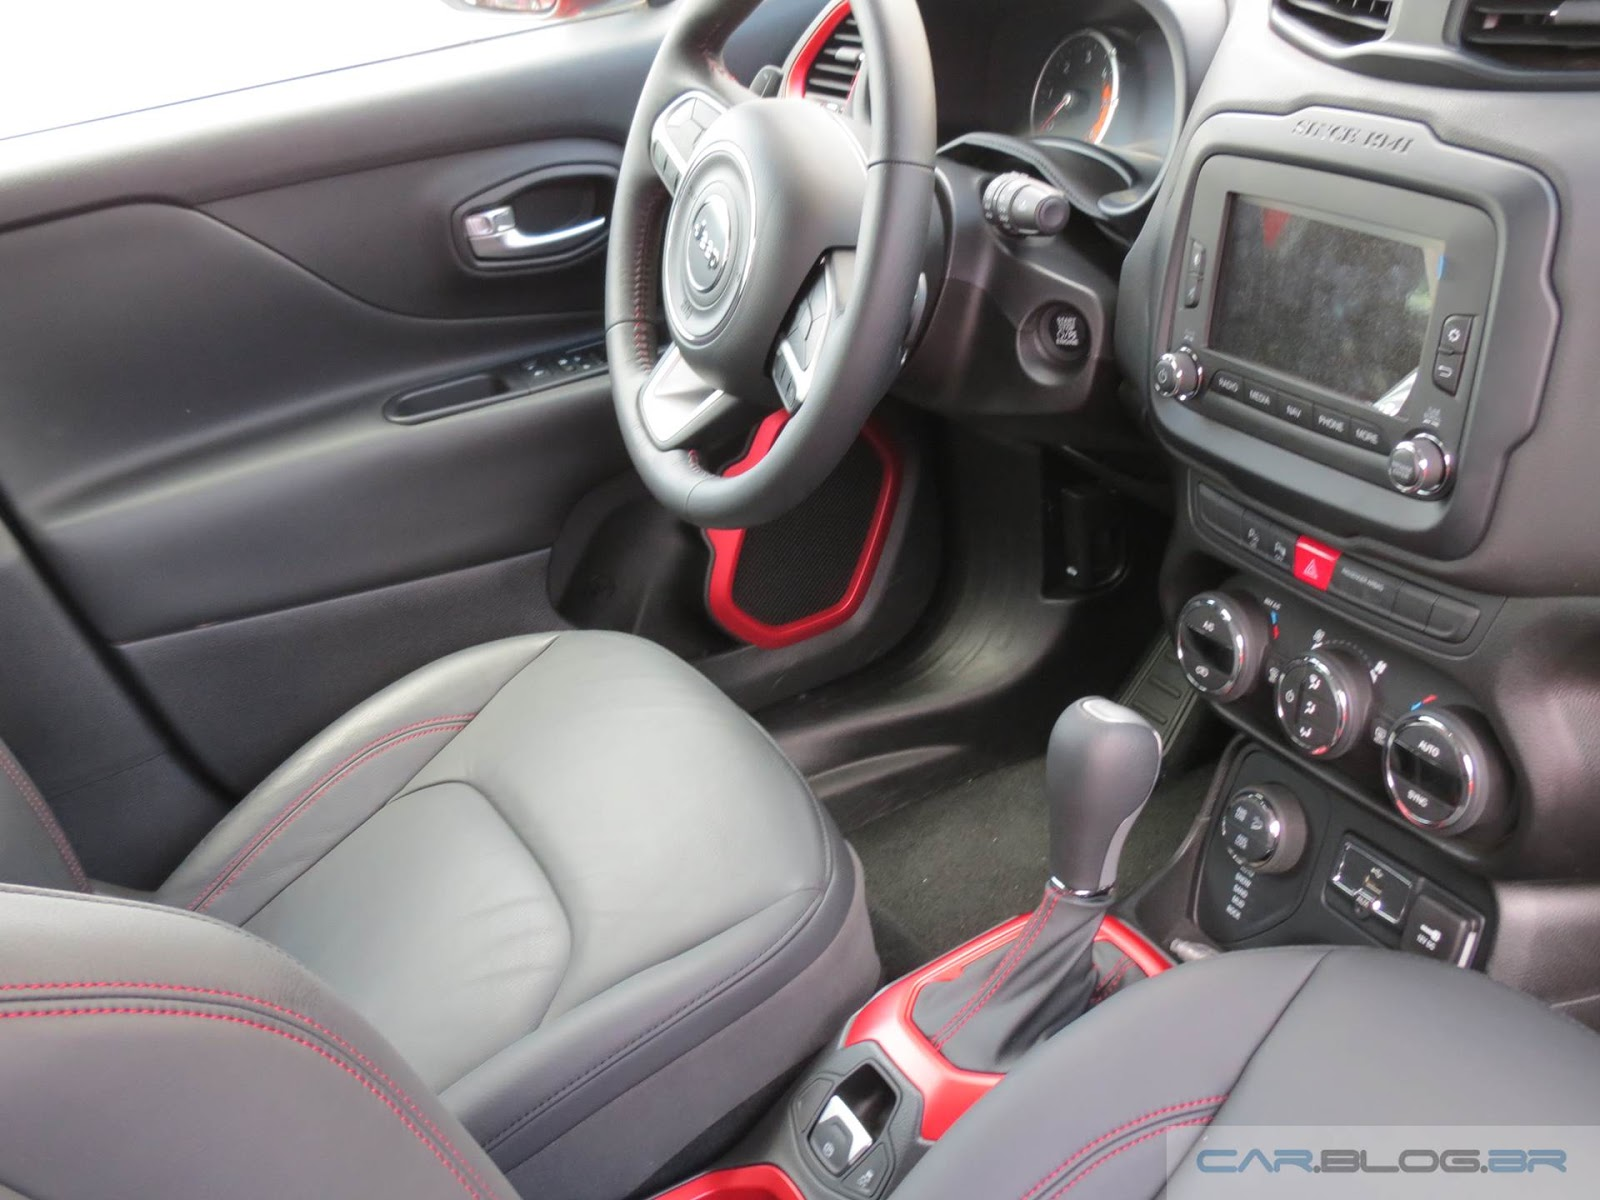 Jeep Renagade Trailhawk - interior